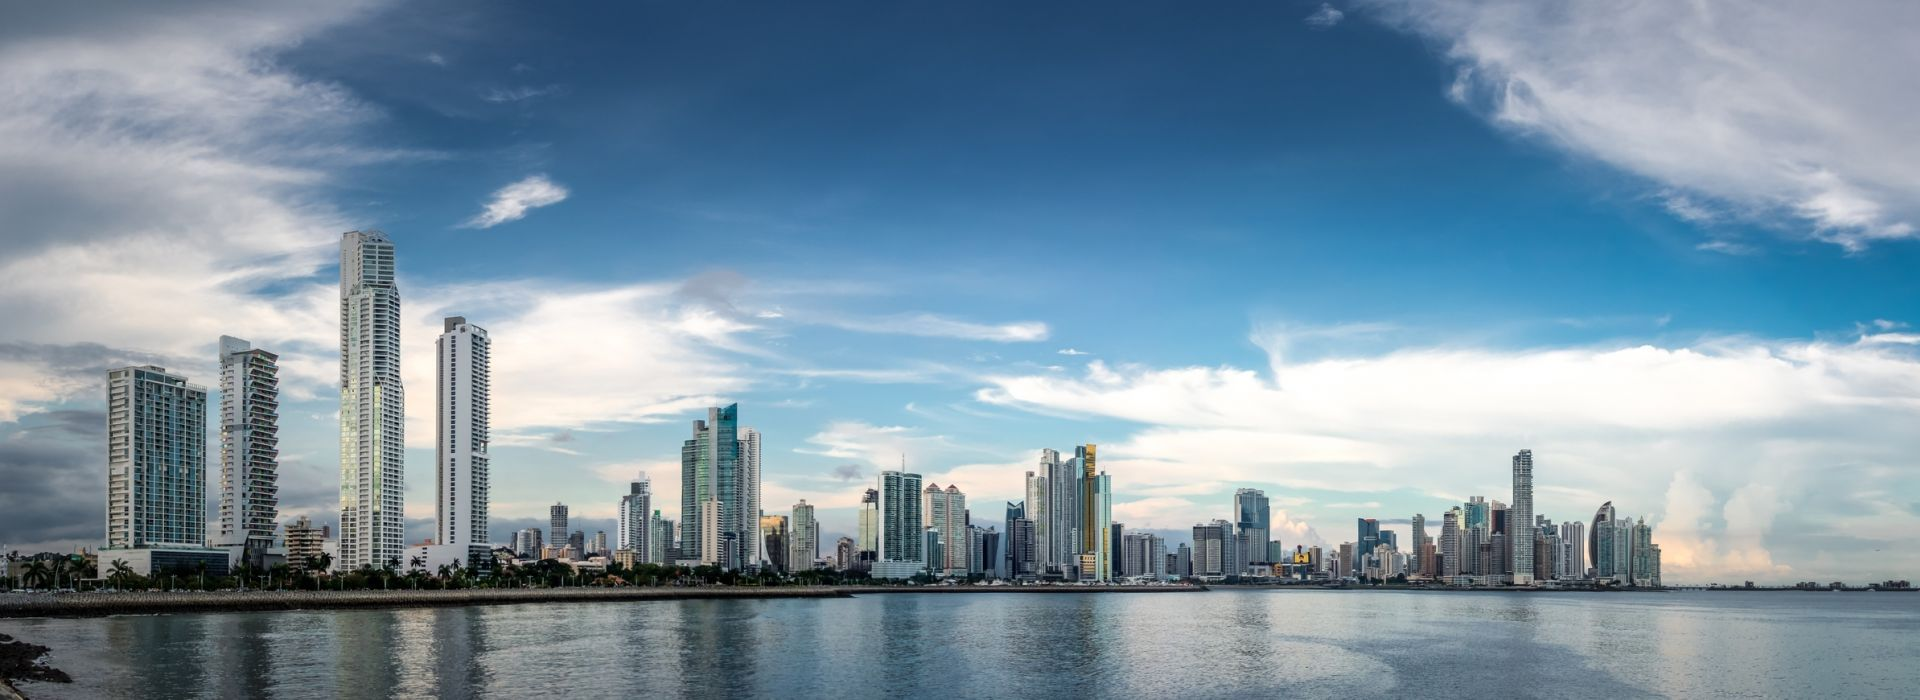 Beach, romance, getaways and relaxation Tours in Panama